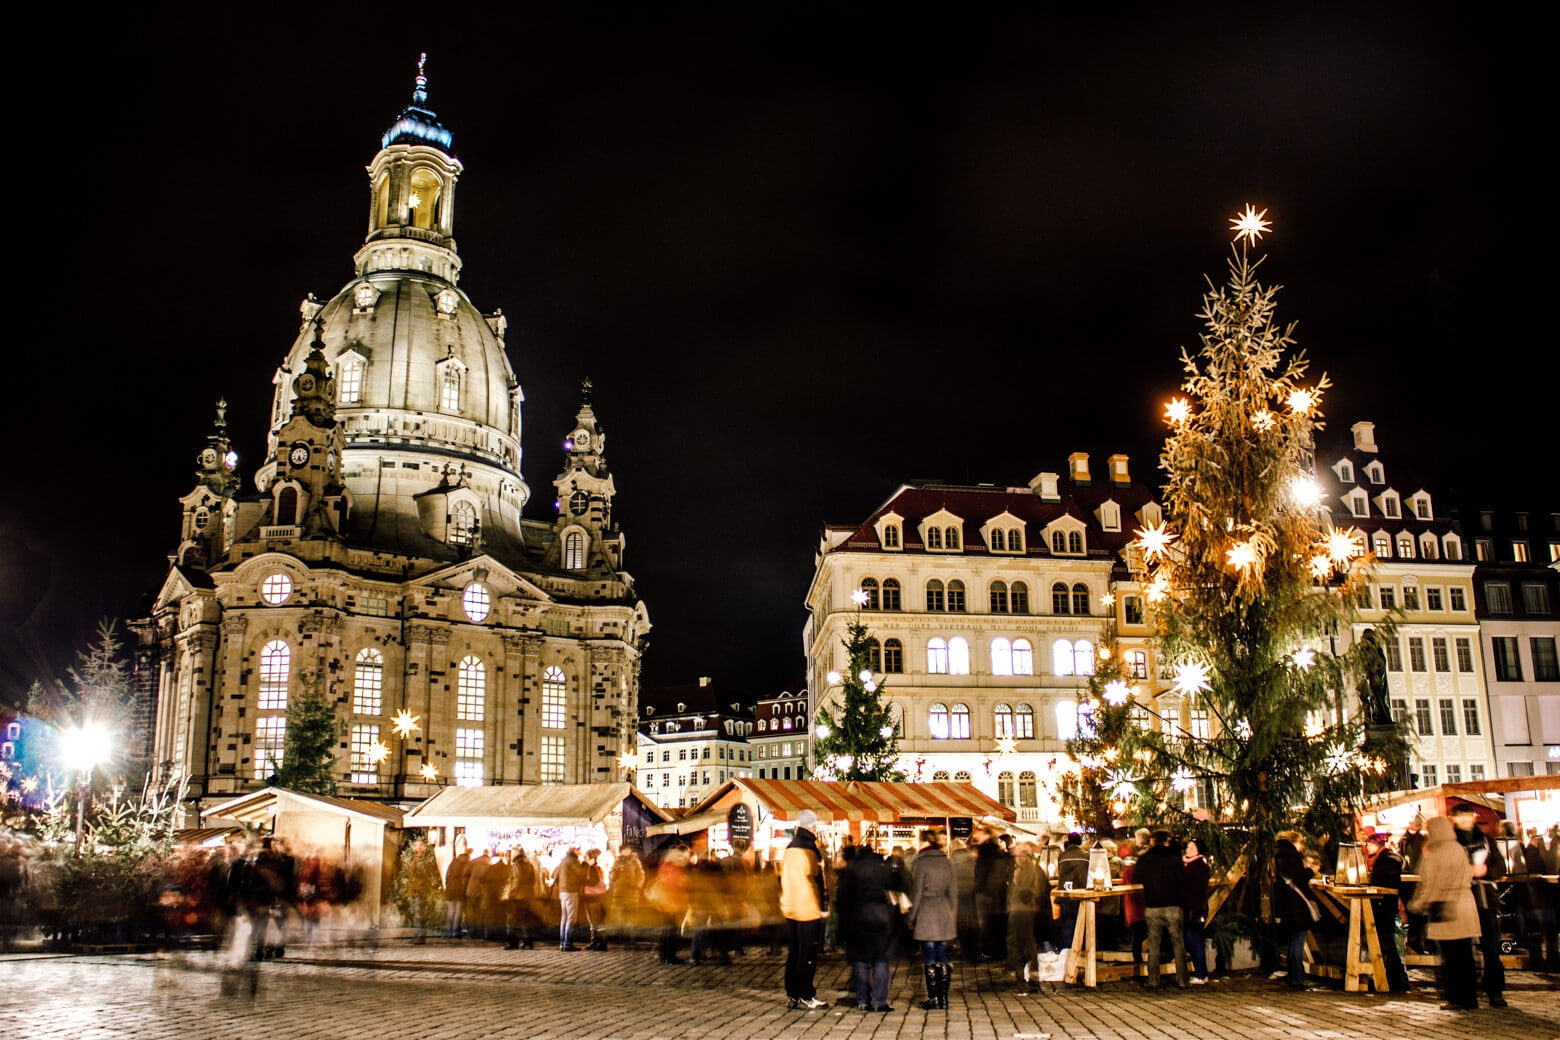 Dresden Christmas Market at Neumarkt